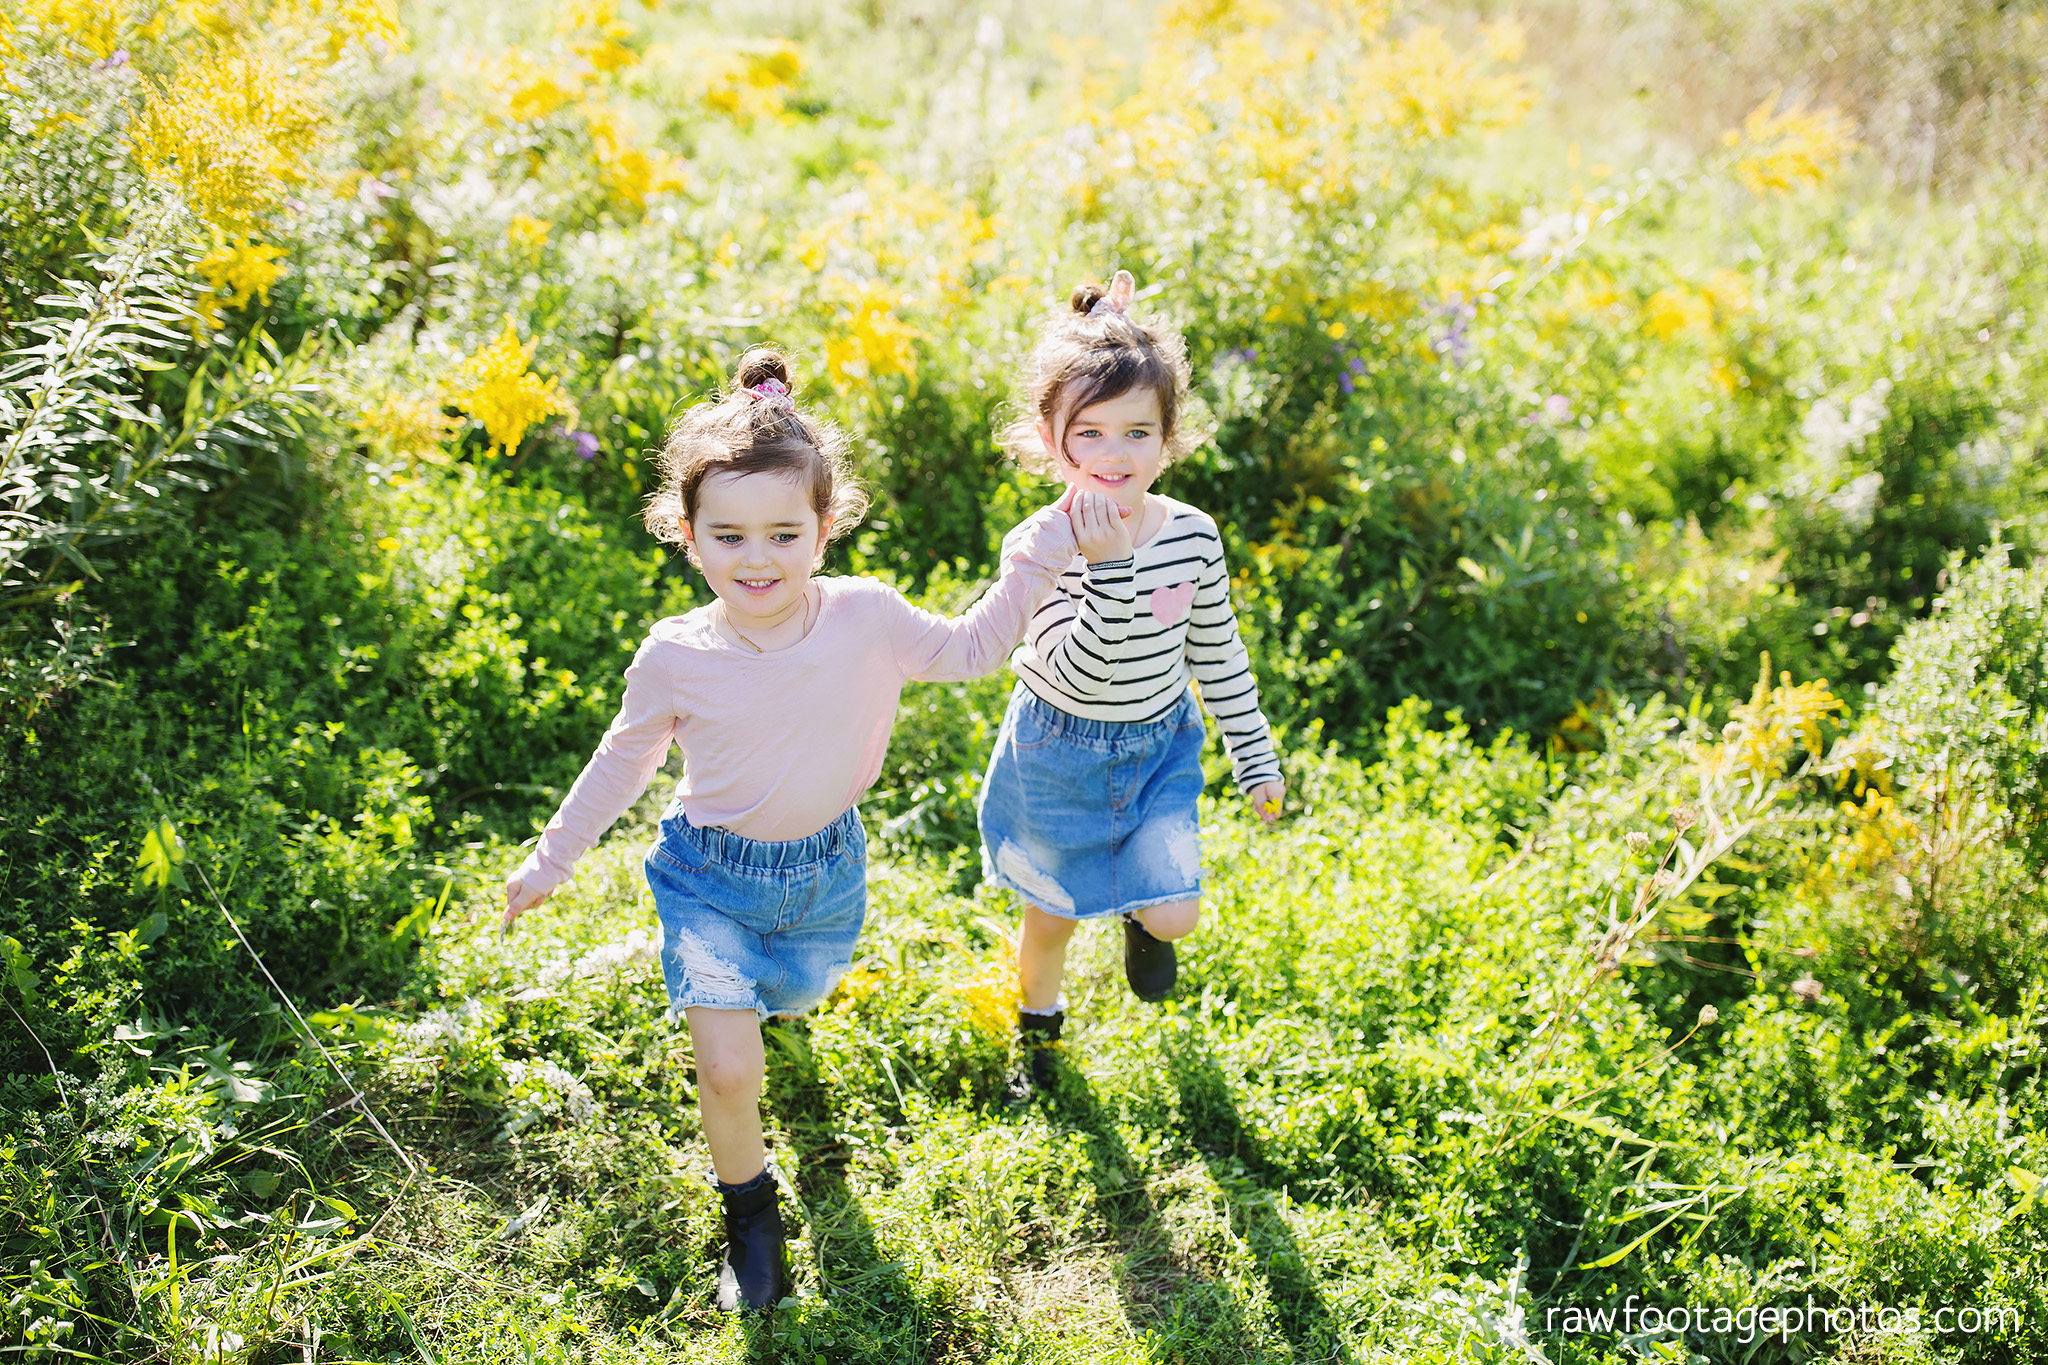 London_Ontario_Family_photographer-Fall_Minis-Woods-Forest-Nature-Candid-Lifestyle-Raw_Footage_Photography030.jpg